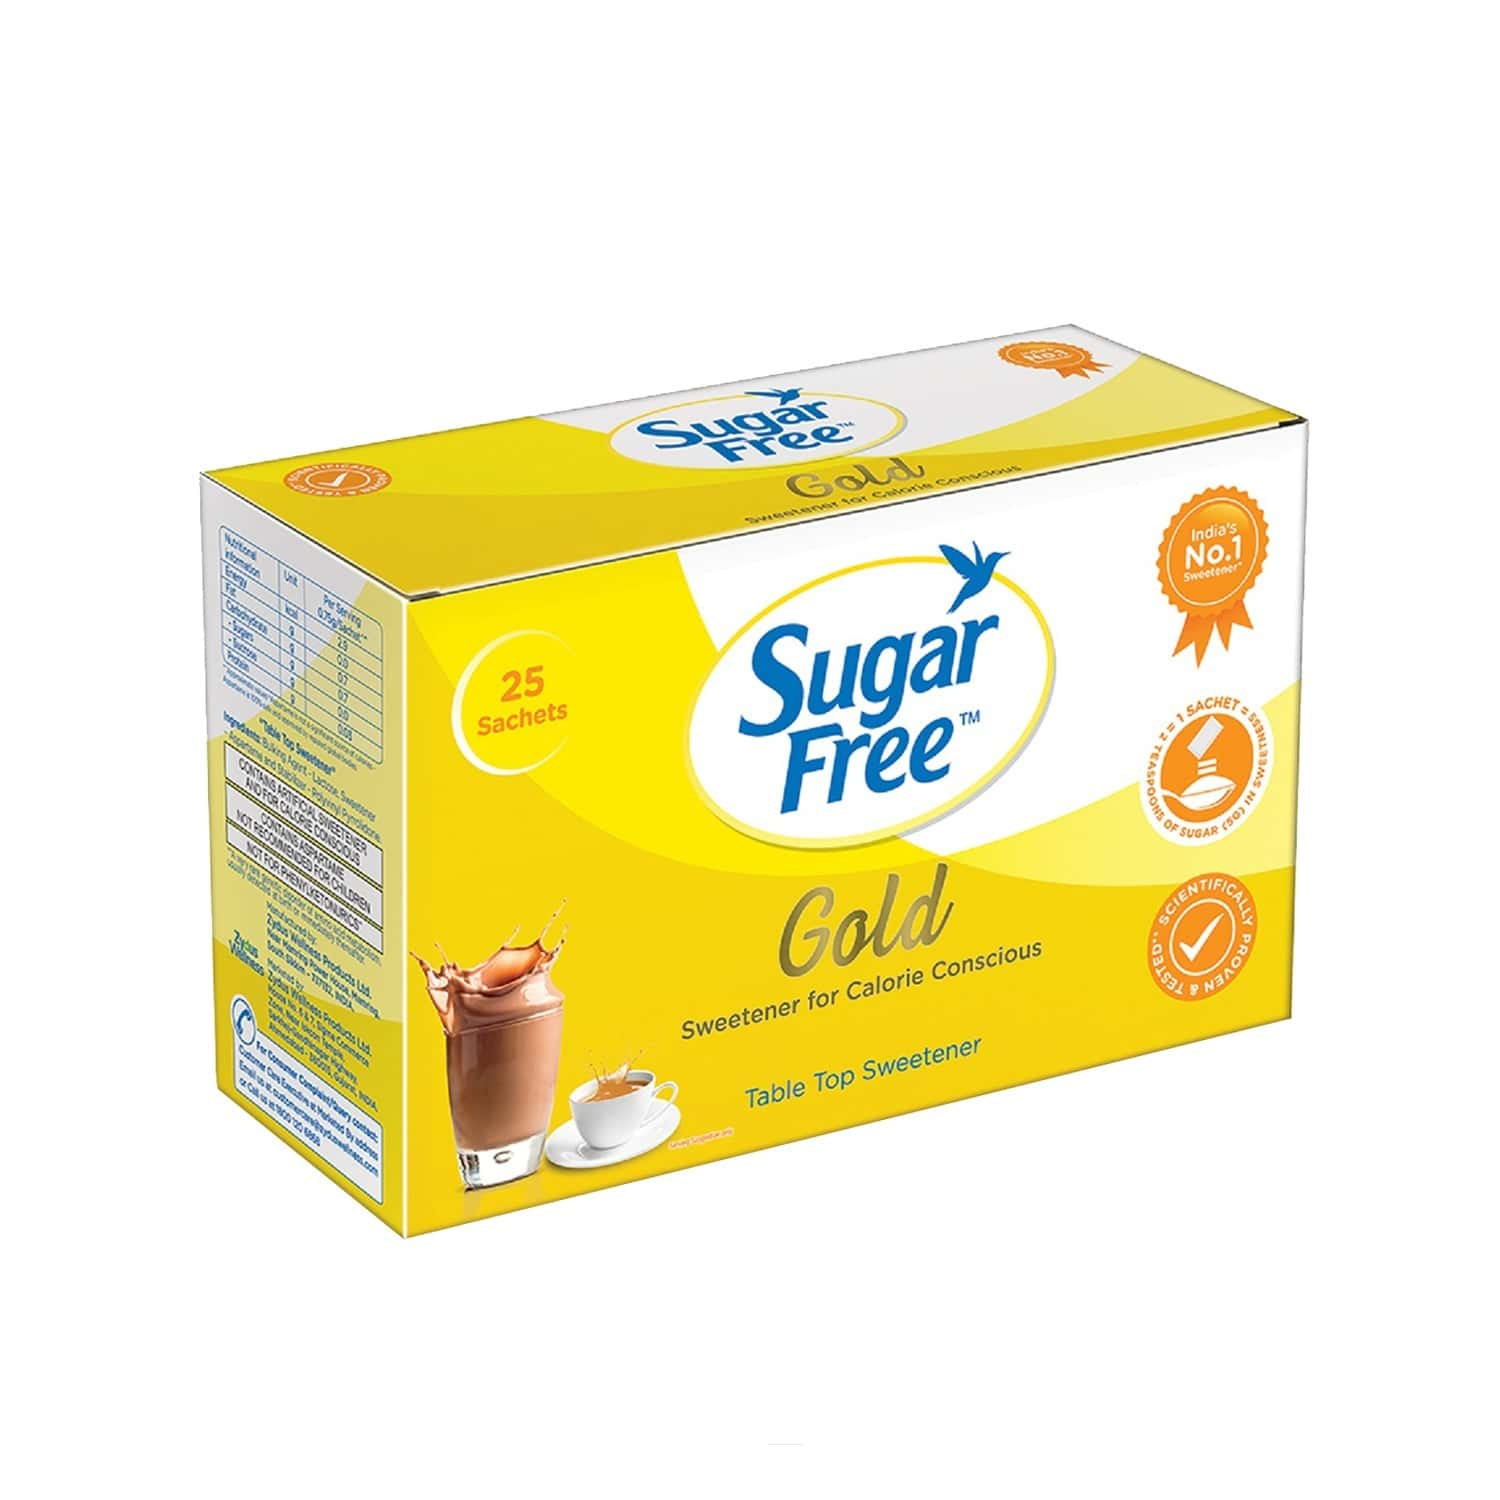 Sugar Free Gold Sweetener Sachets Low Calorie Sachet Of 25